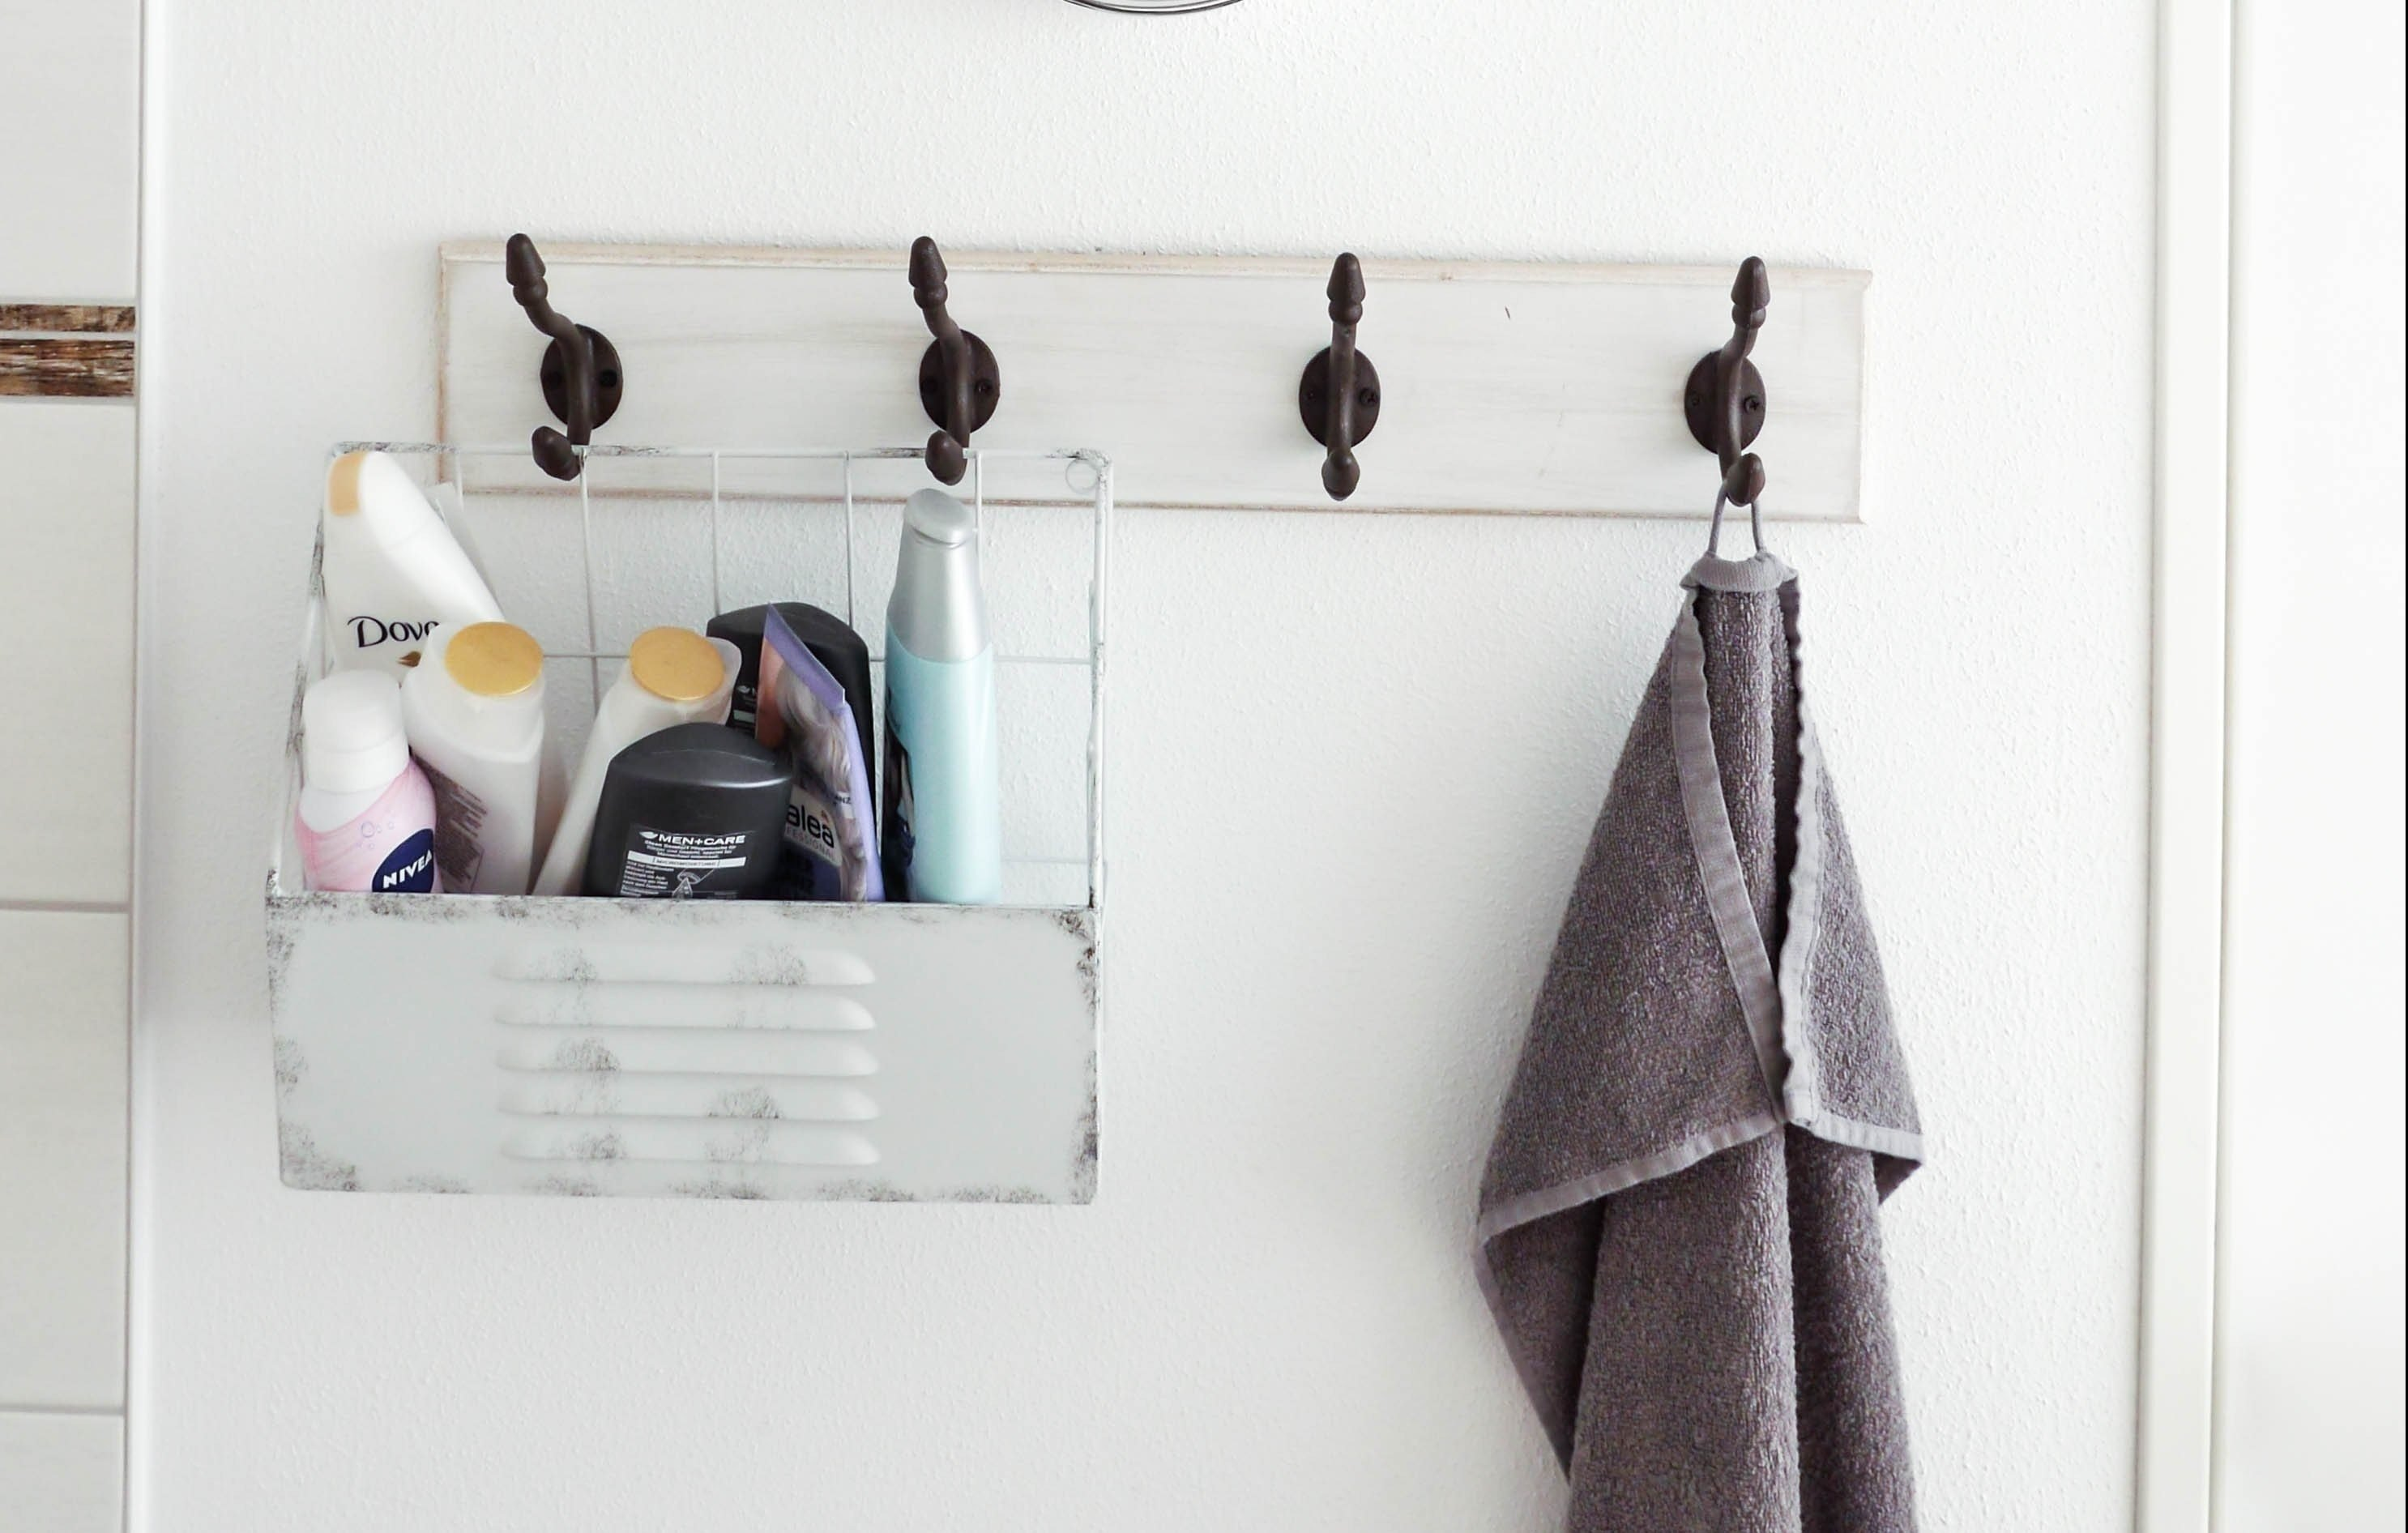 Bathroom wall with hanging towel and shower caddy